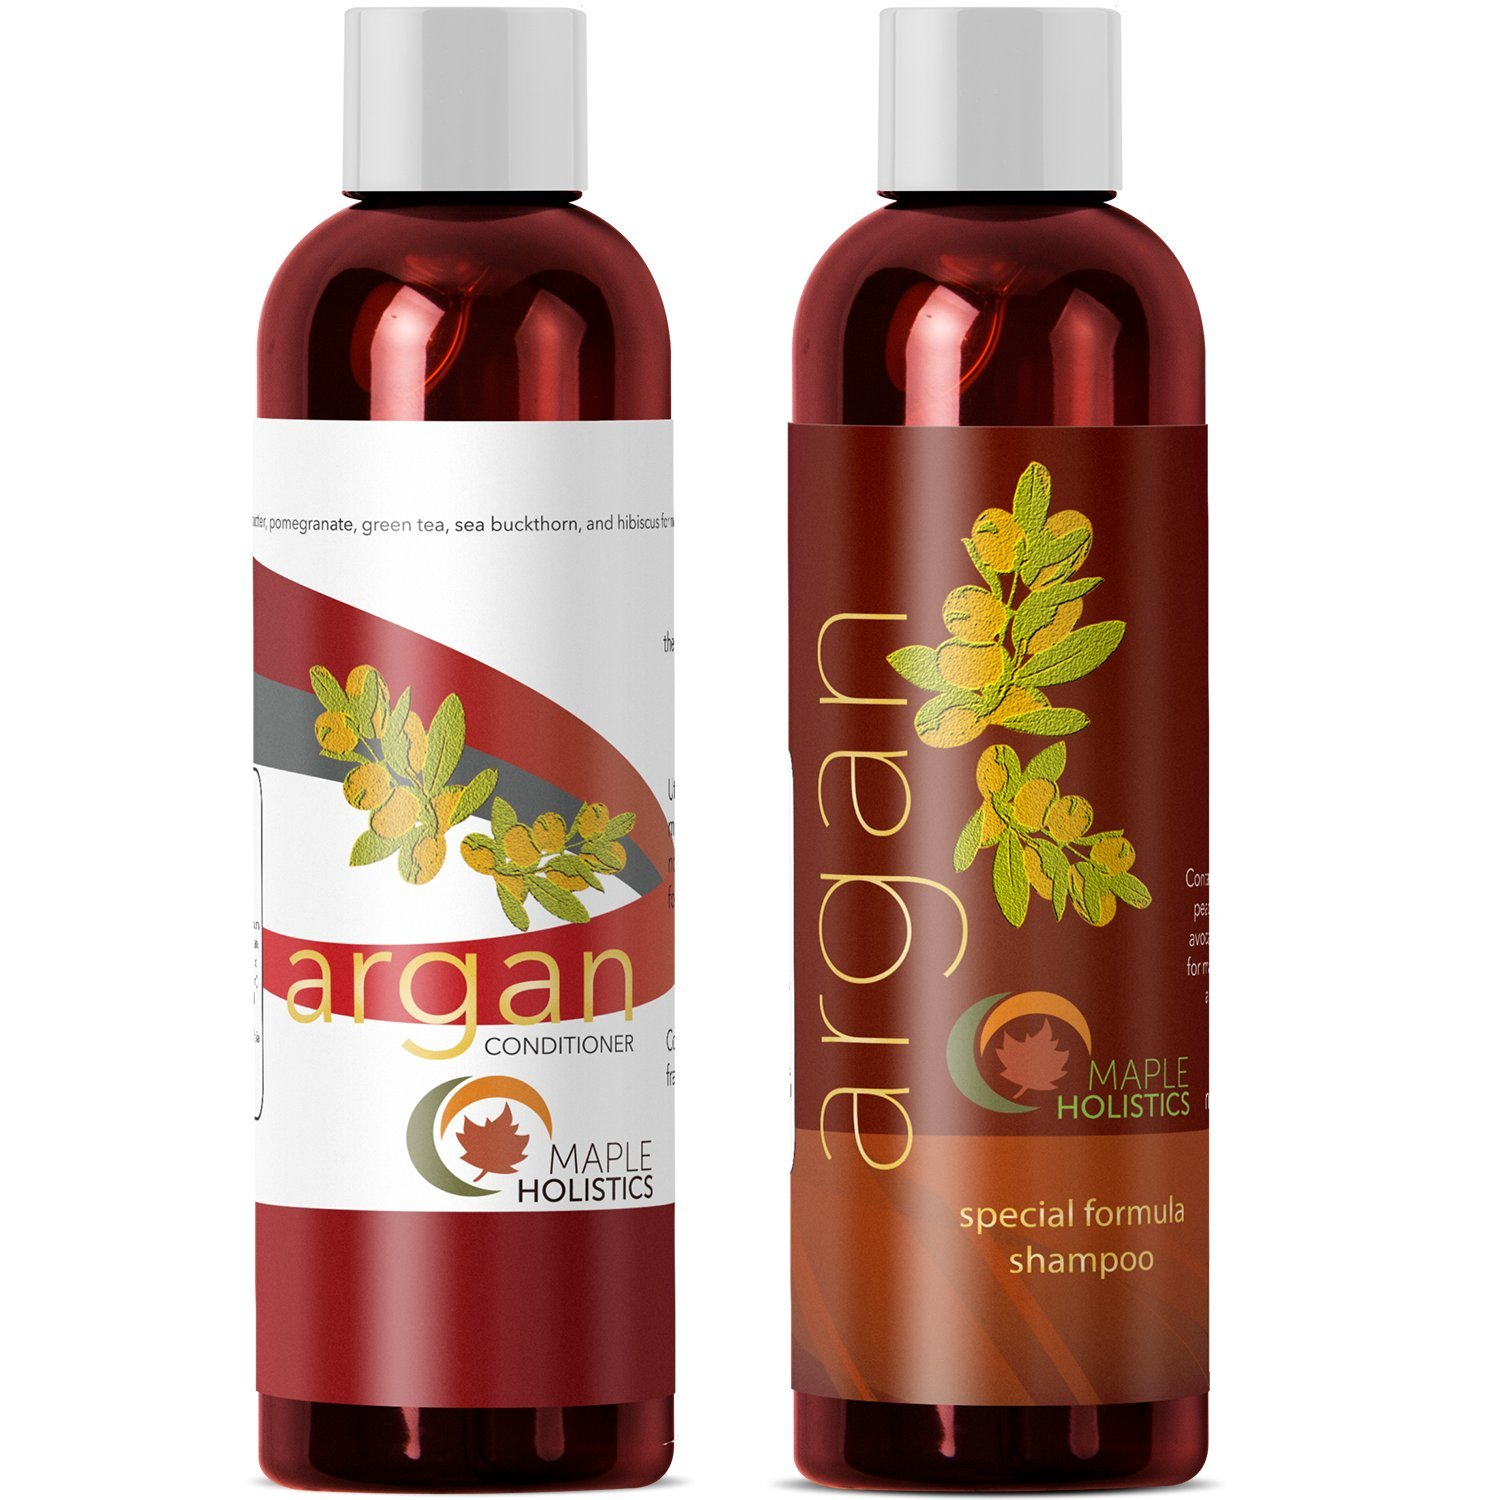 Argan Oil Shampoo and Hair Conditioner Set - Argan Jojoba Almond Oil Peach Kernel Keratin - Sulfate Free - Safe for Color Treated Damaged and Dry Hair - For Women Men Teens and All Hair Types by Maple Holistics